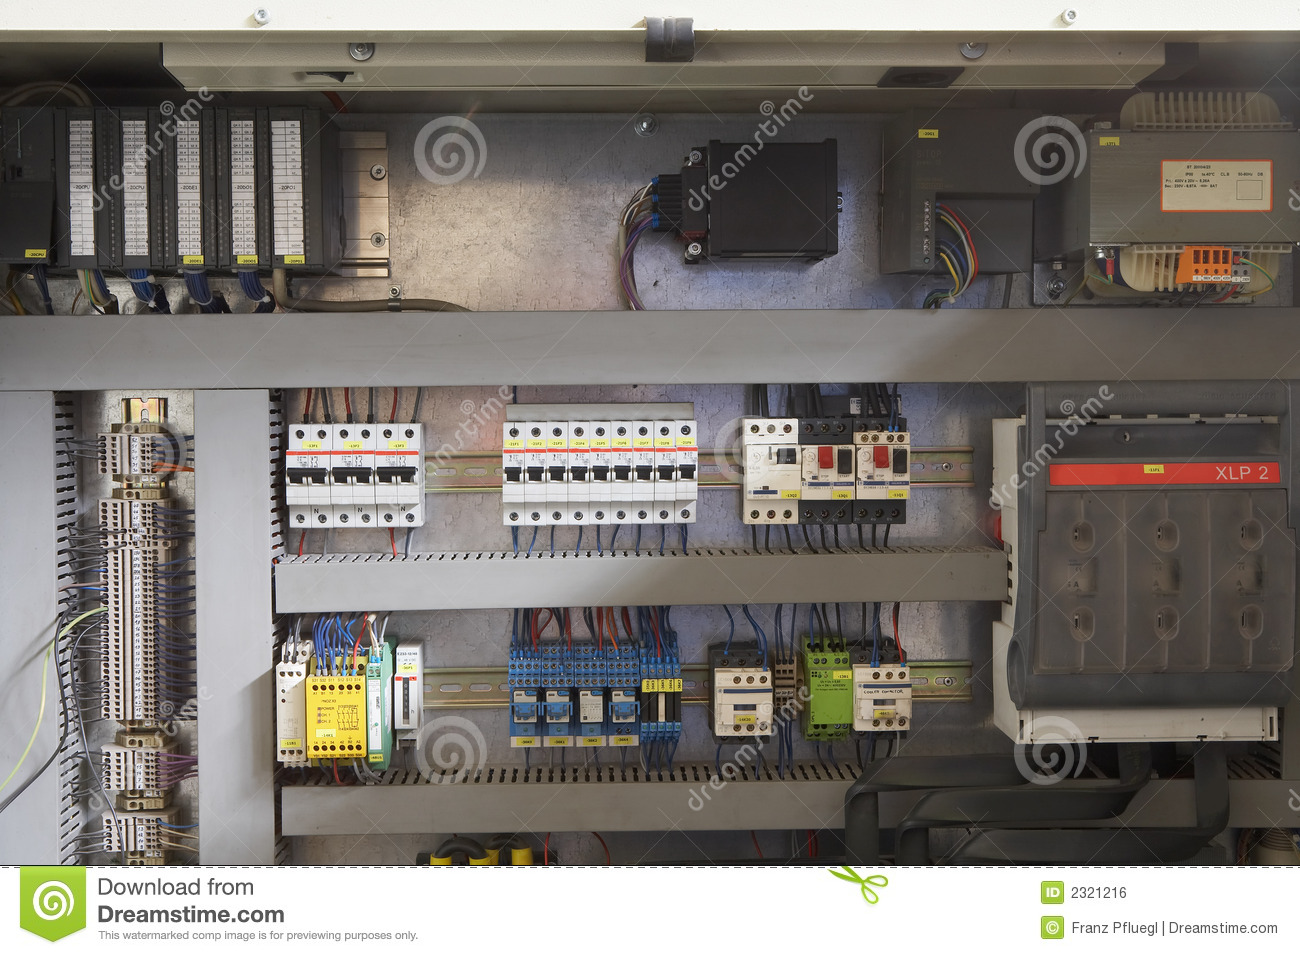 fuse box stock photo image of construction, office, engineering ford ranger fuse box diagram office fuse box #12